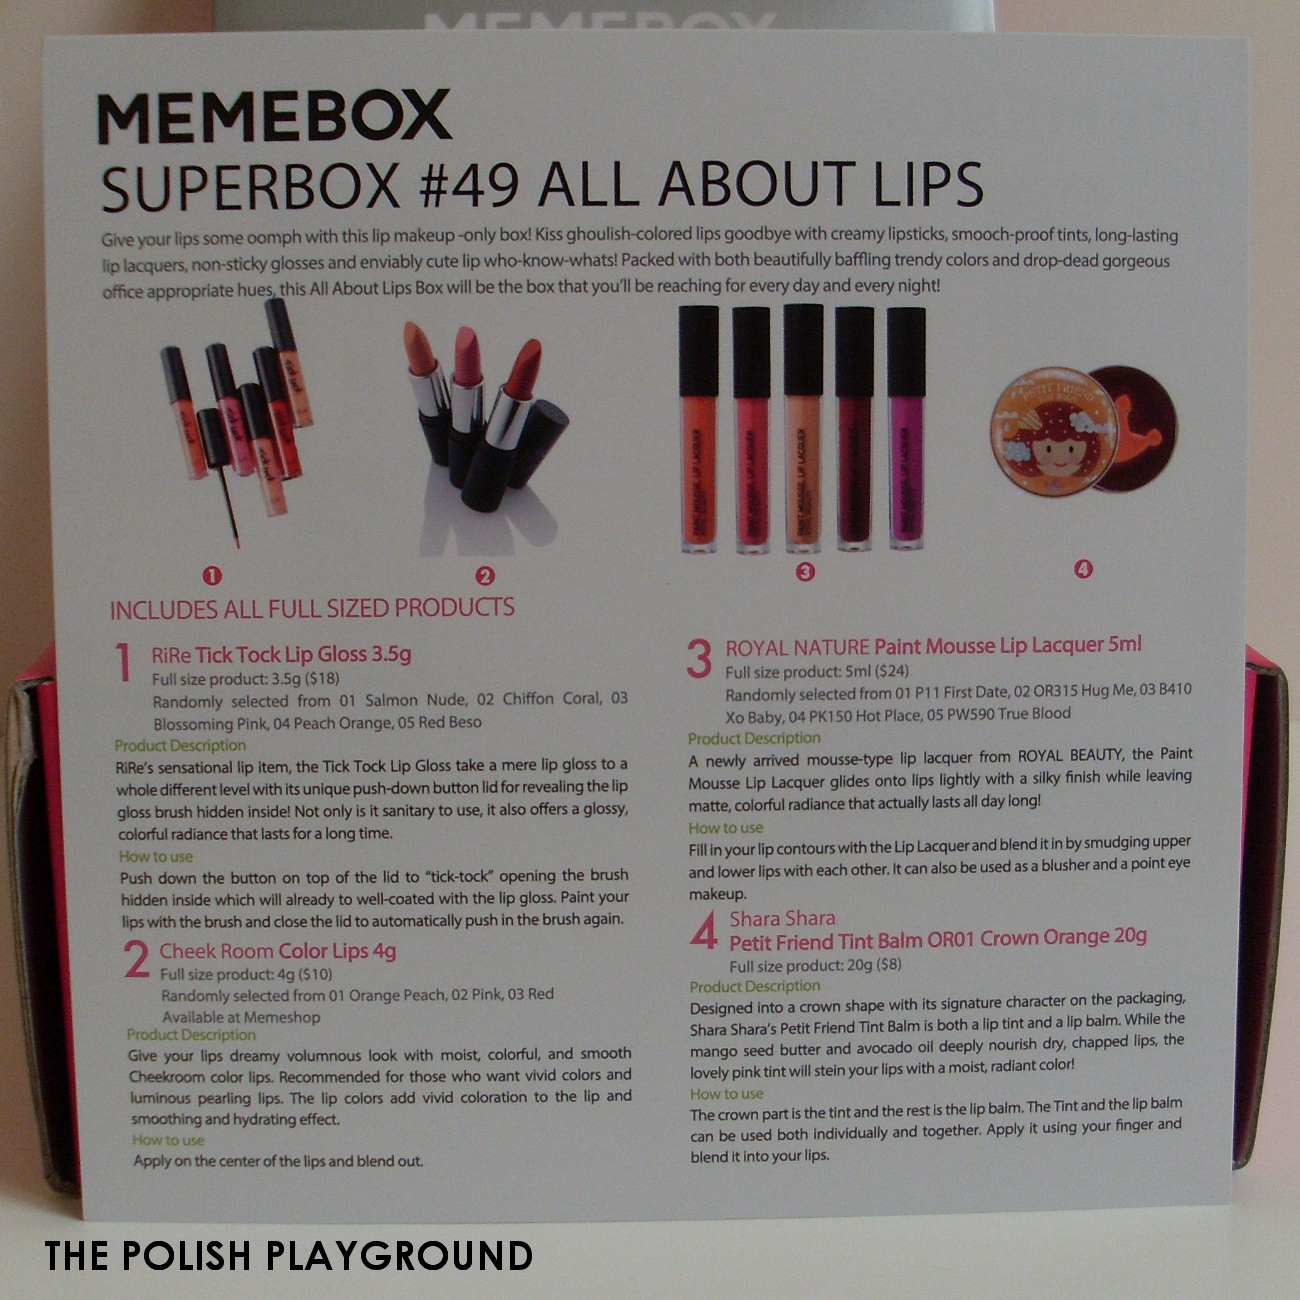 Memebox Superbox #49 All About Lips Unboxing